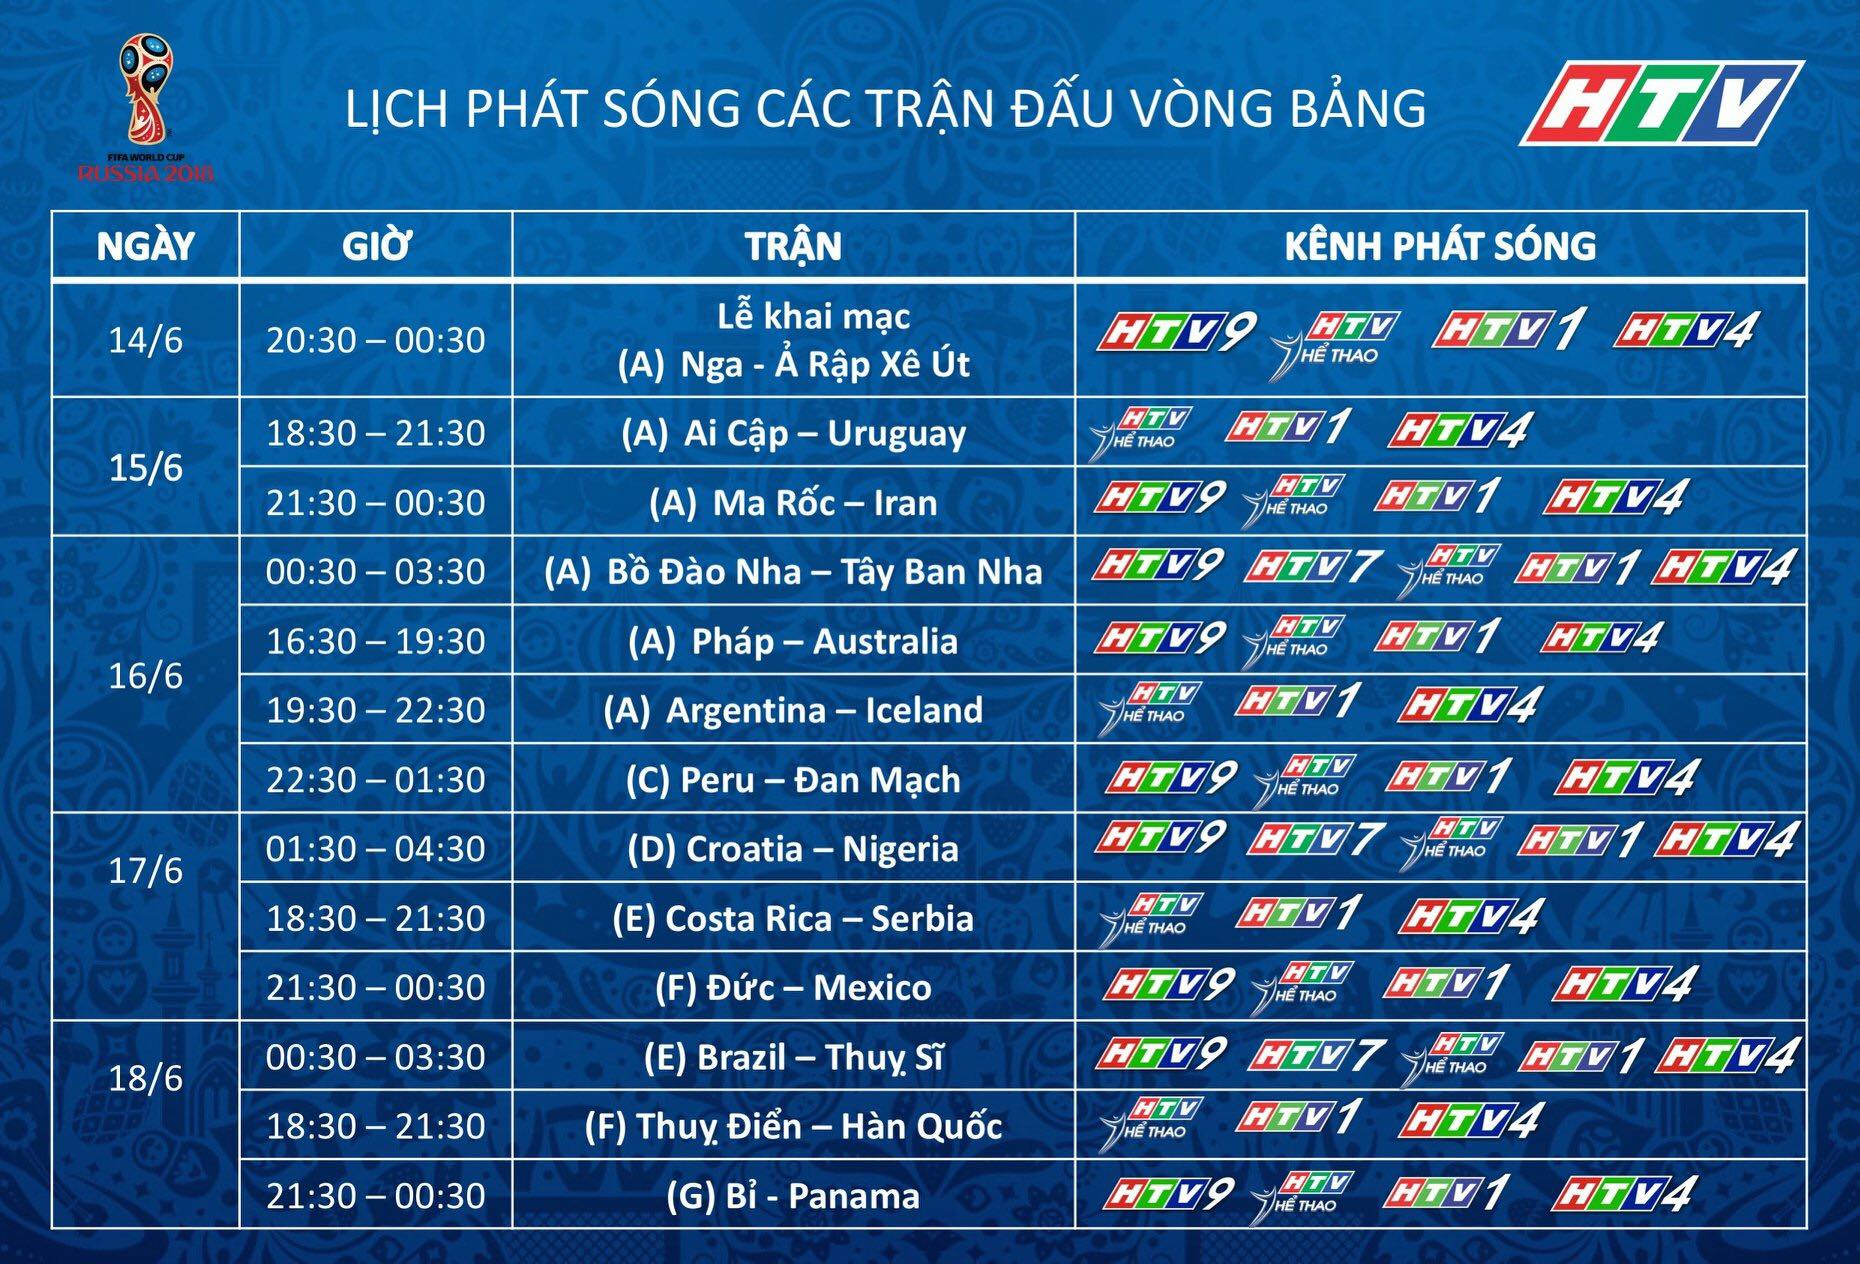 LICH PHAT SONG WORLD CUP 2018 TREN HTV